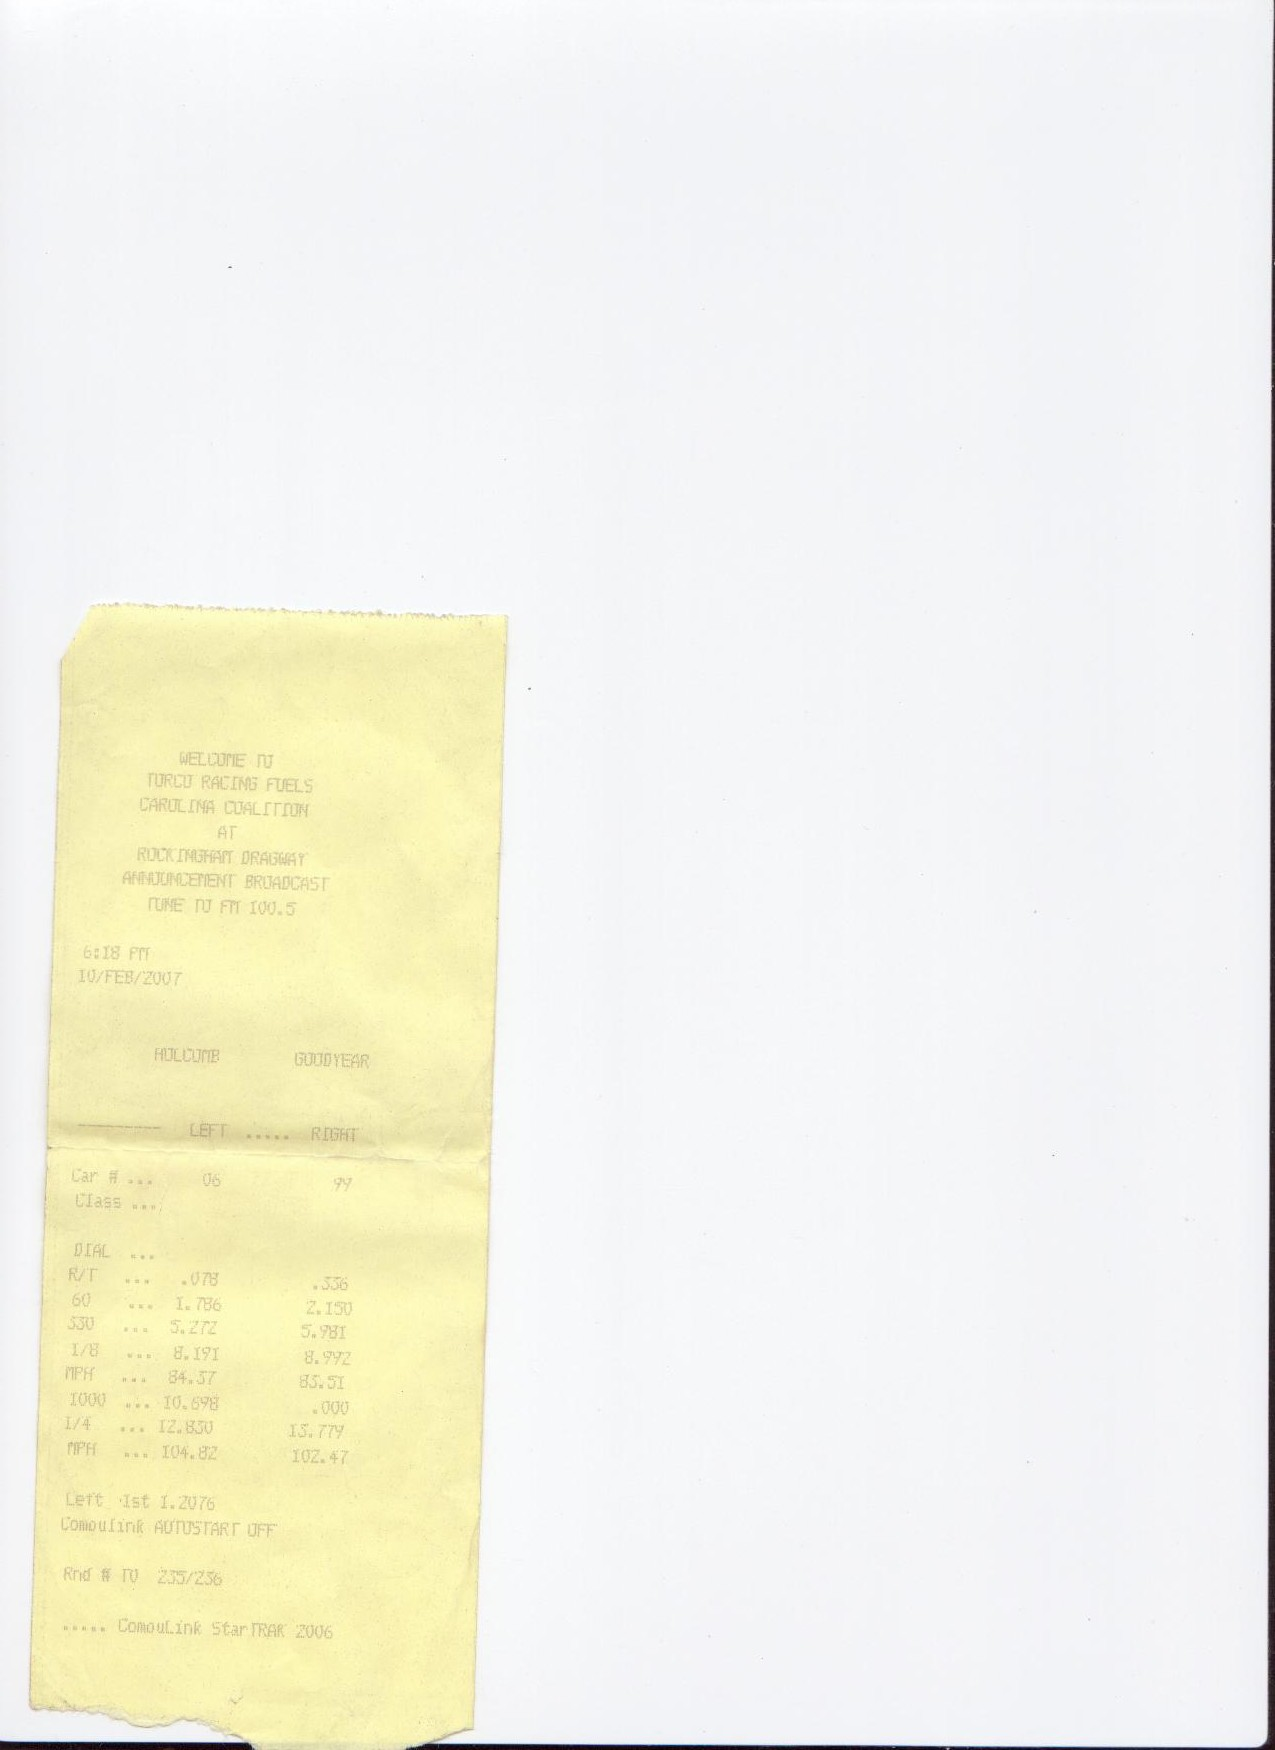 Dodge Neon SRT-4 Timeslip Scan